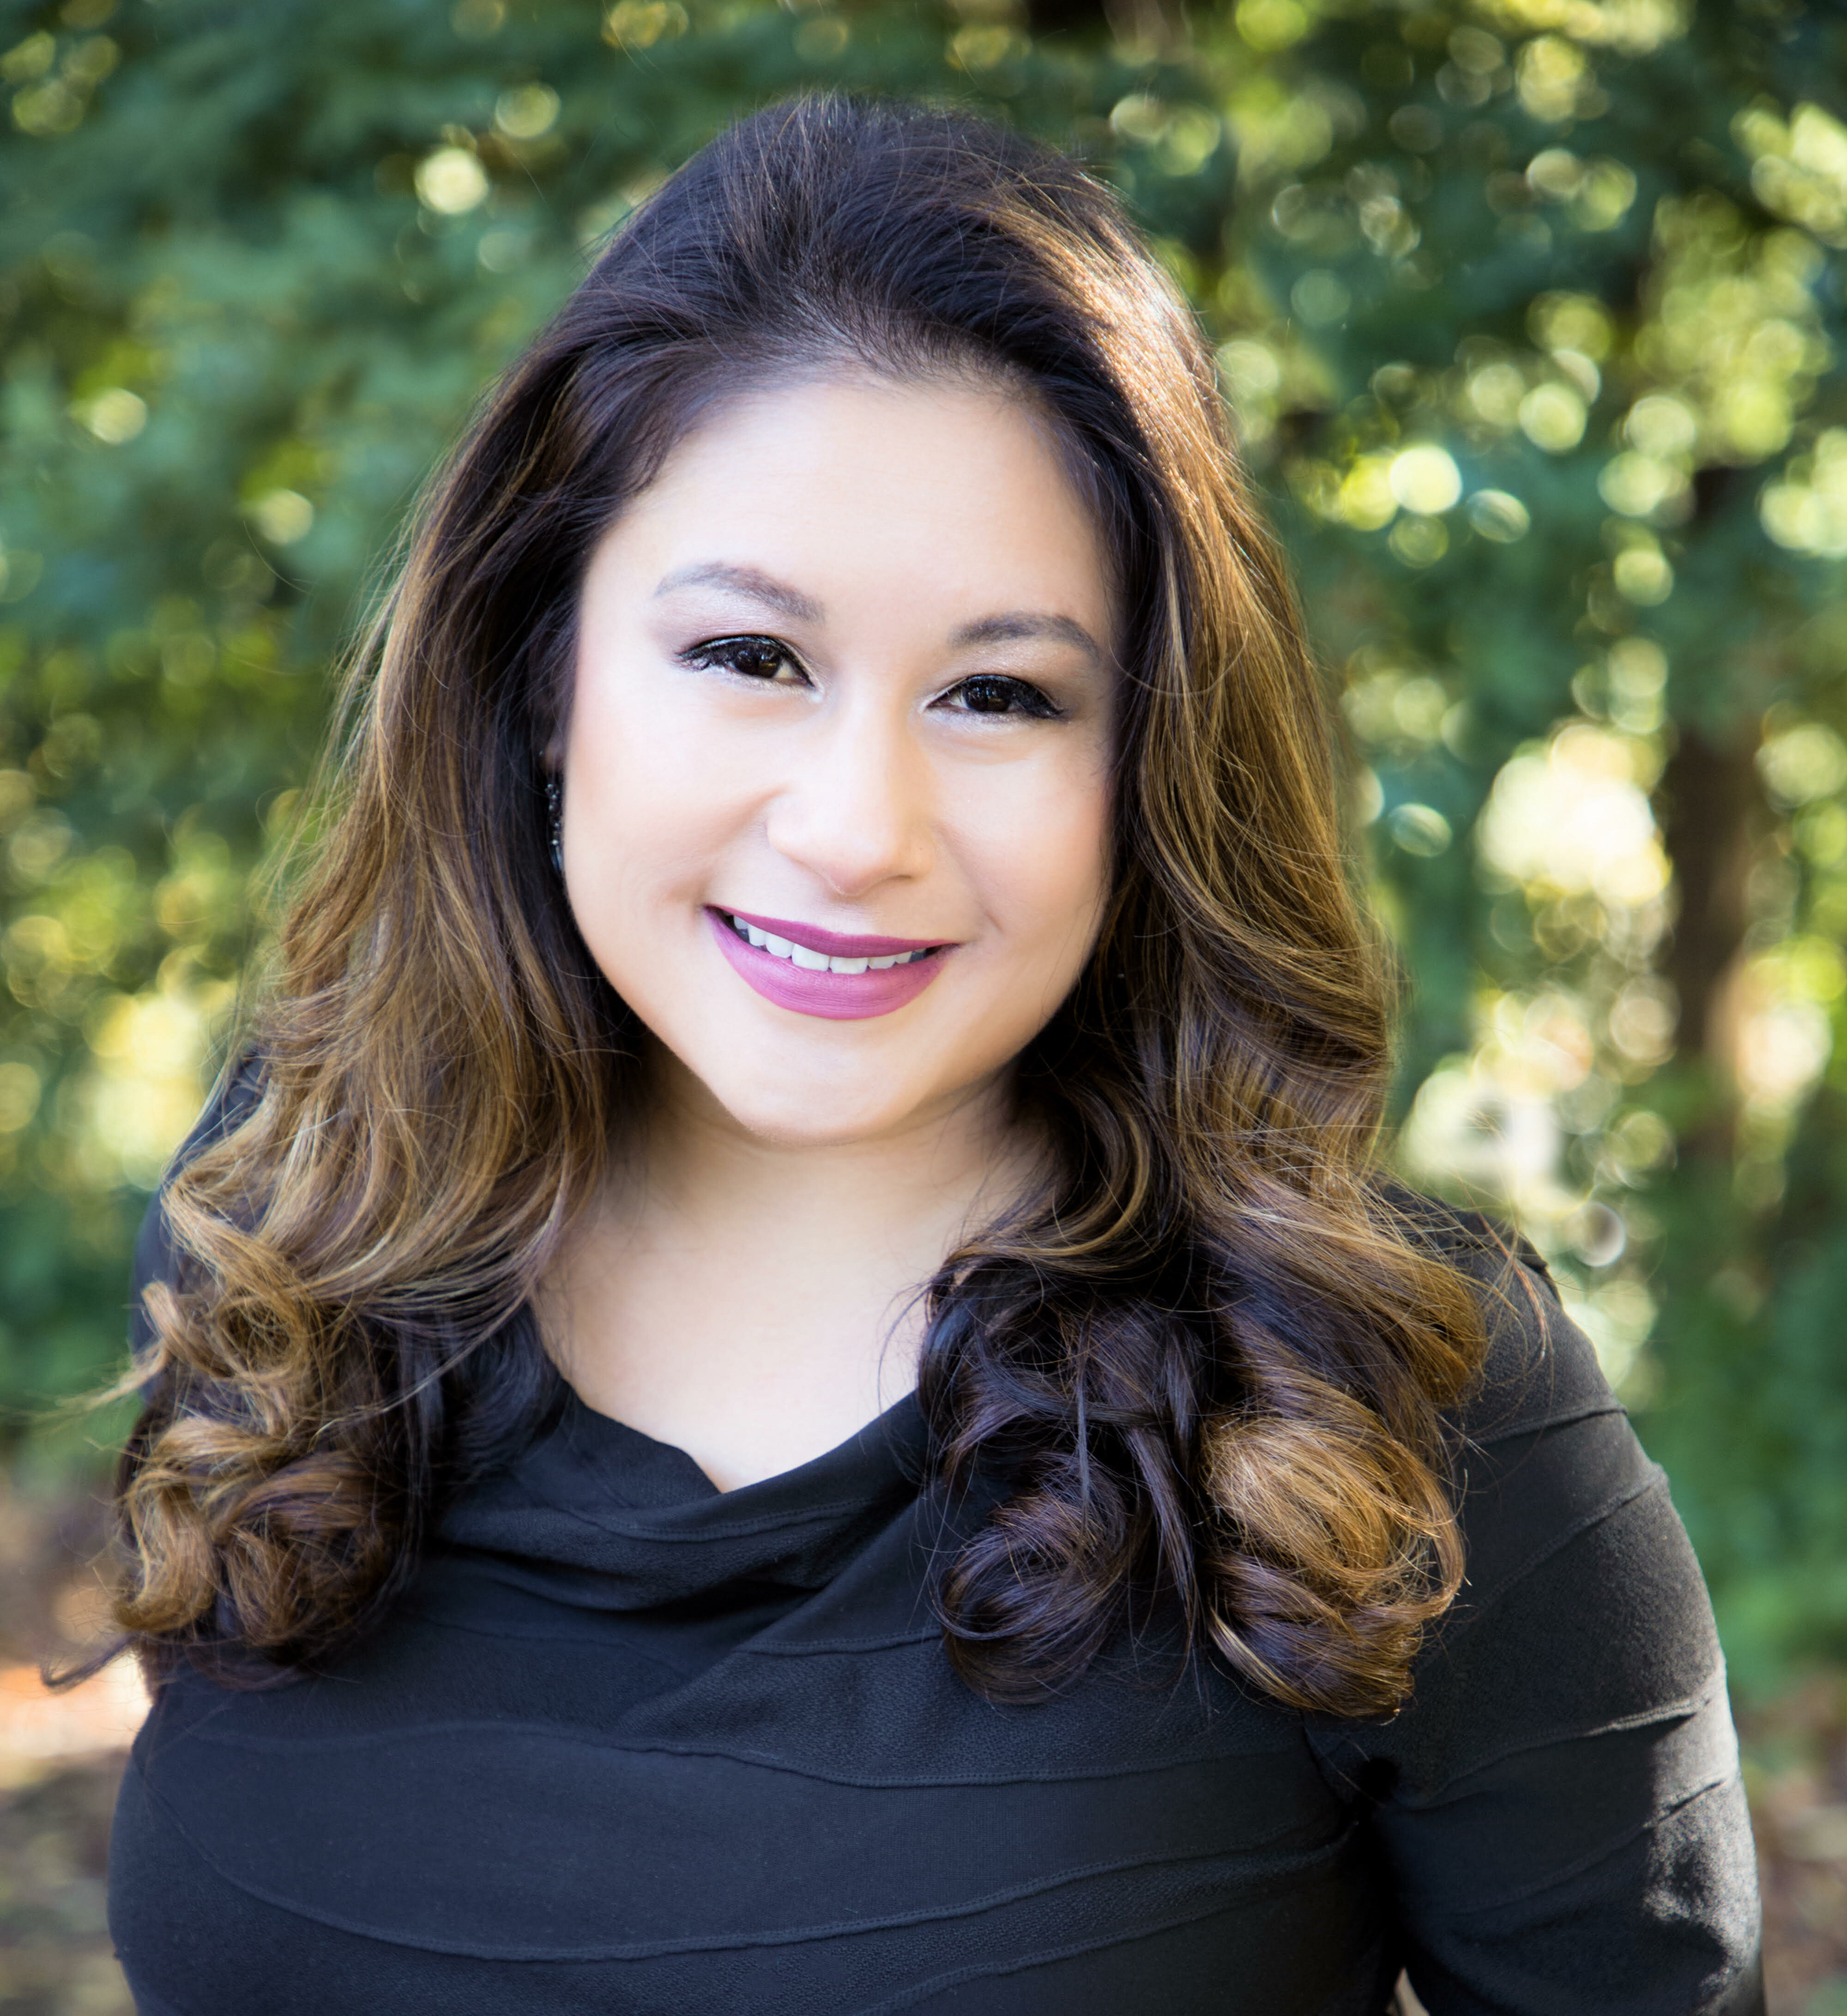 Filipino-American woman smiling at camera, wearing lipstick with long curly brown hair, brown eyes and black blouse. She is outdoors and there is greenery behind her